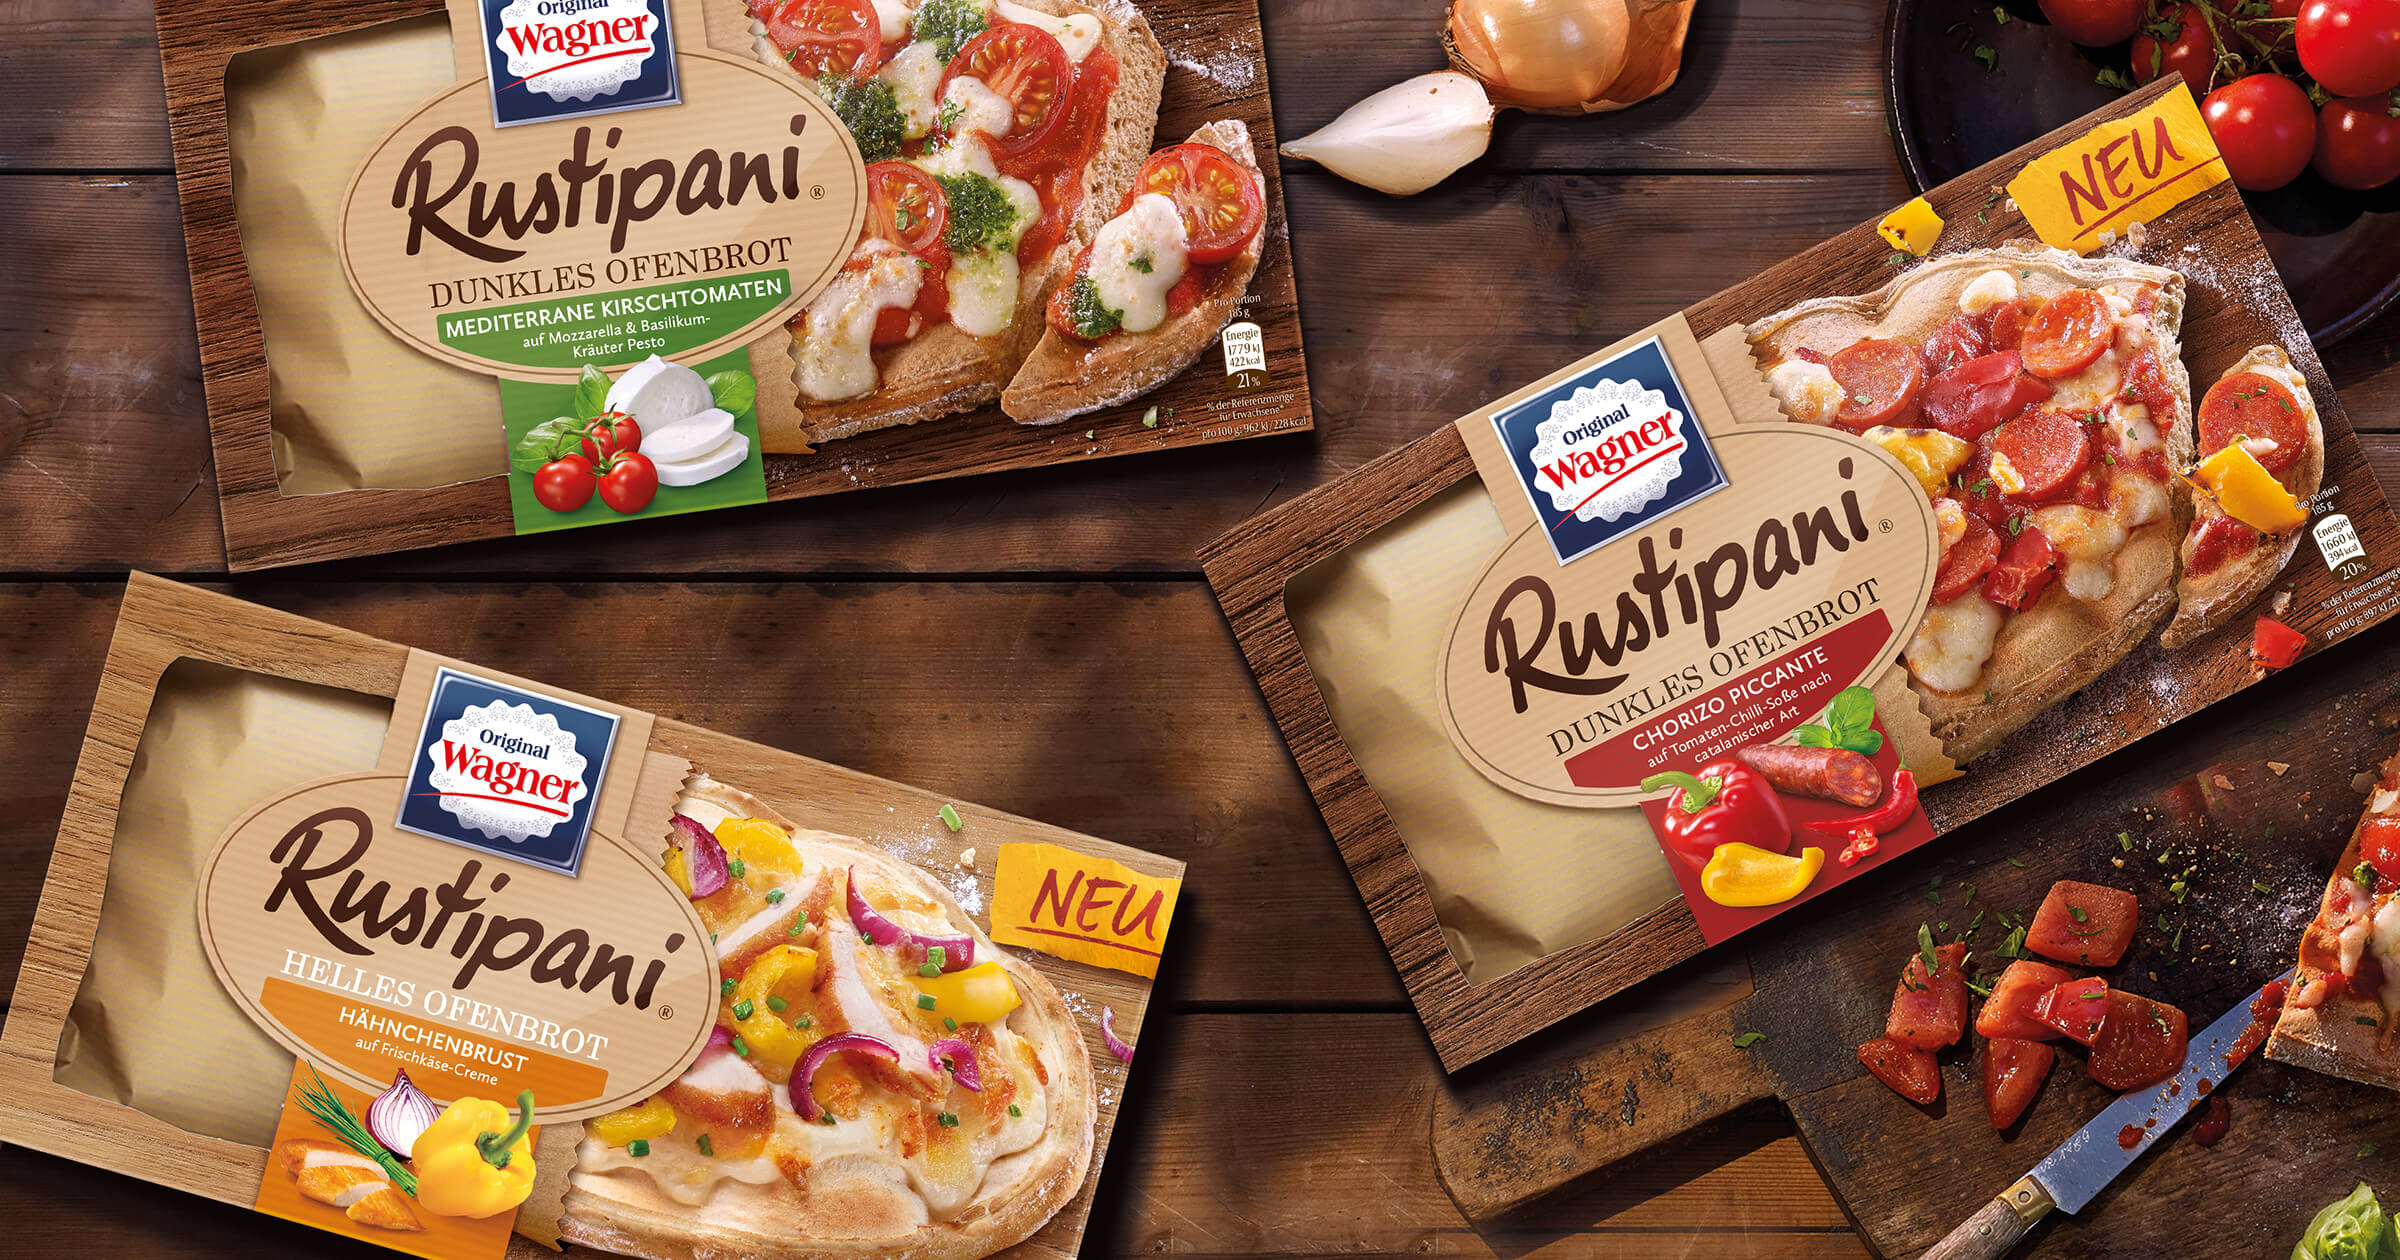 Rustipani: Top brand 2018 with new packaging concept